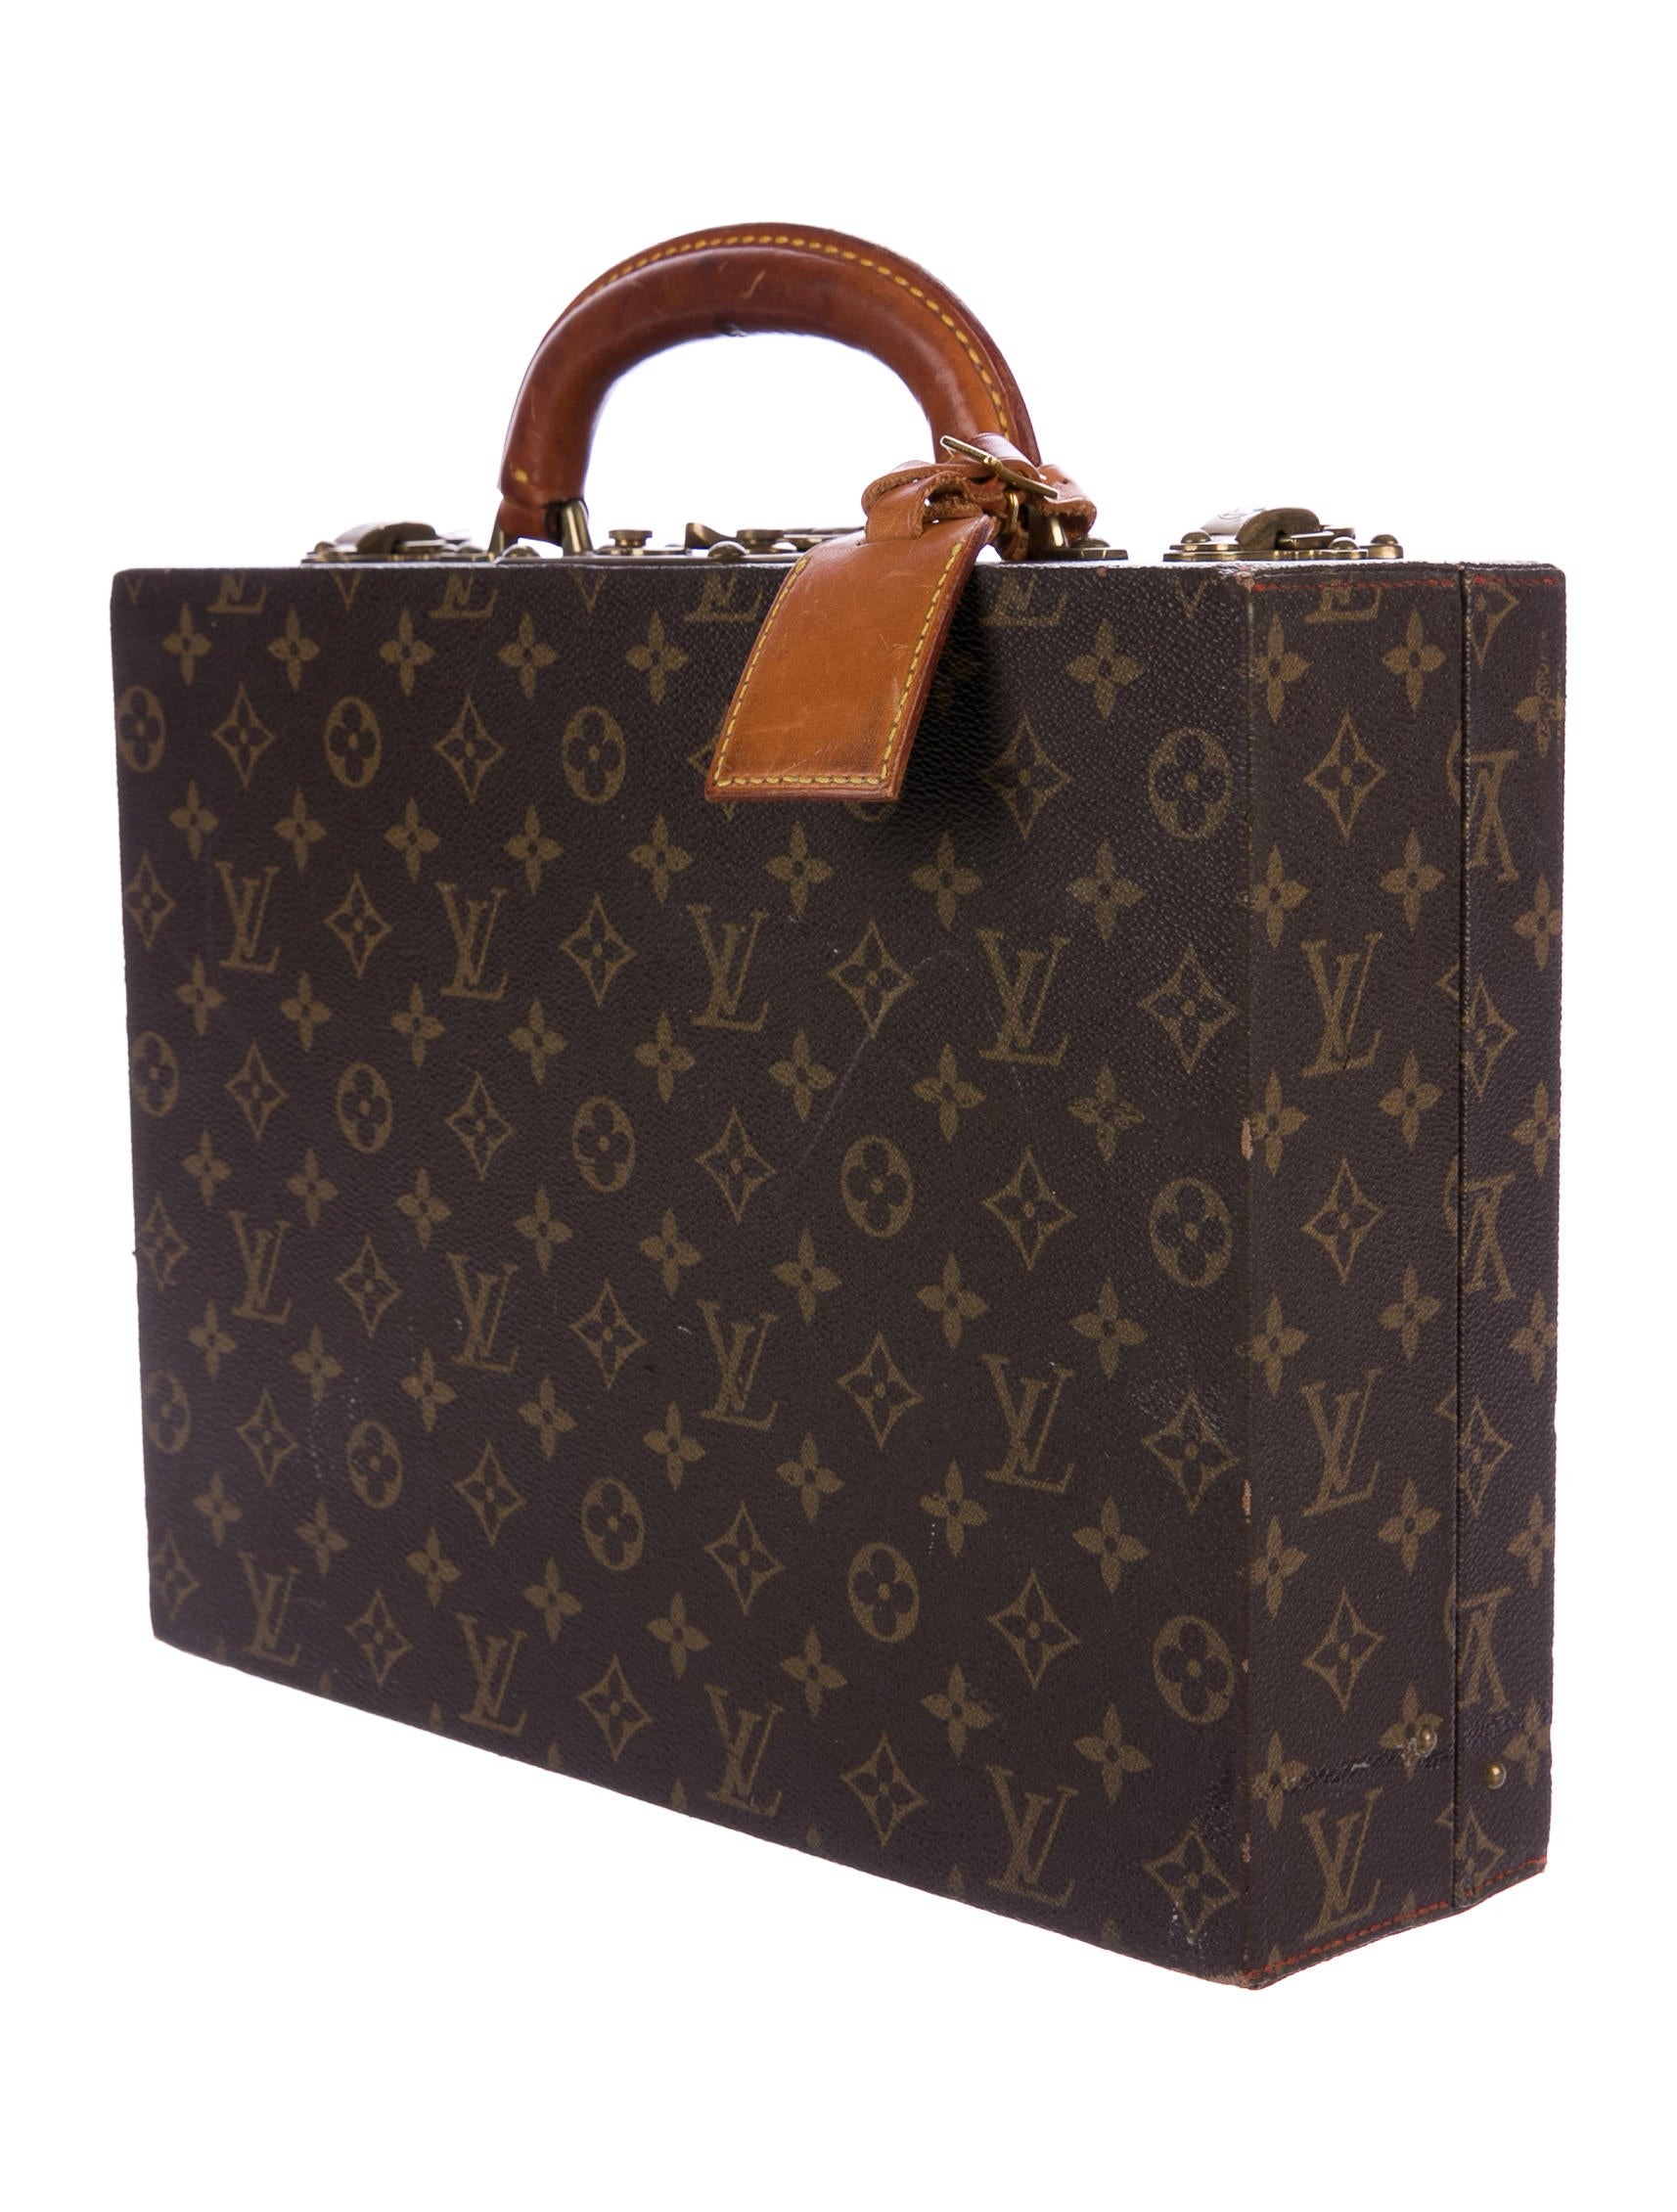 louis vuitton monogram bo te bijoux handbags lou130887 the realreal. Black Bedroom Furniture Sets. Home Design Ideas